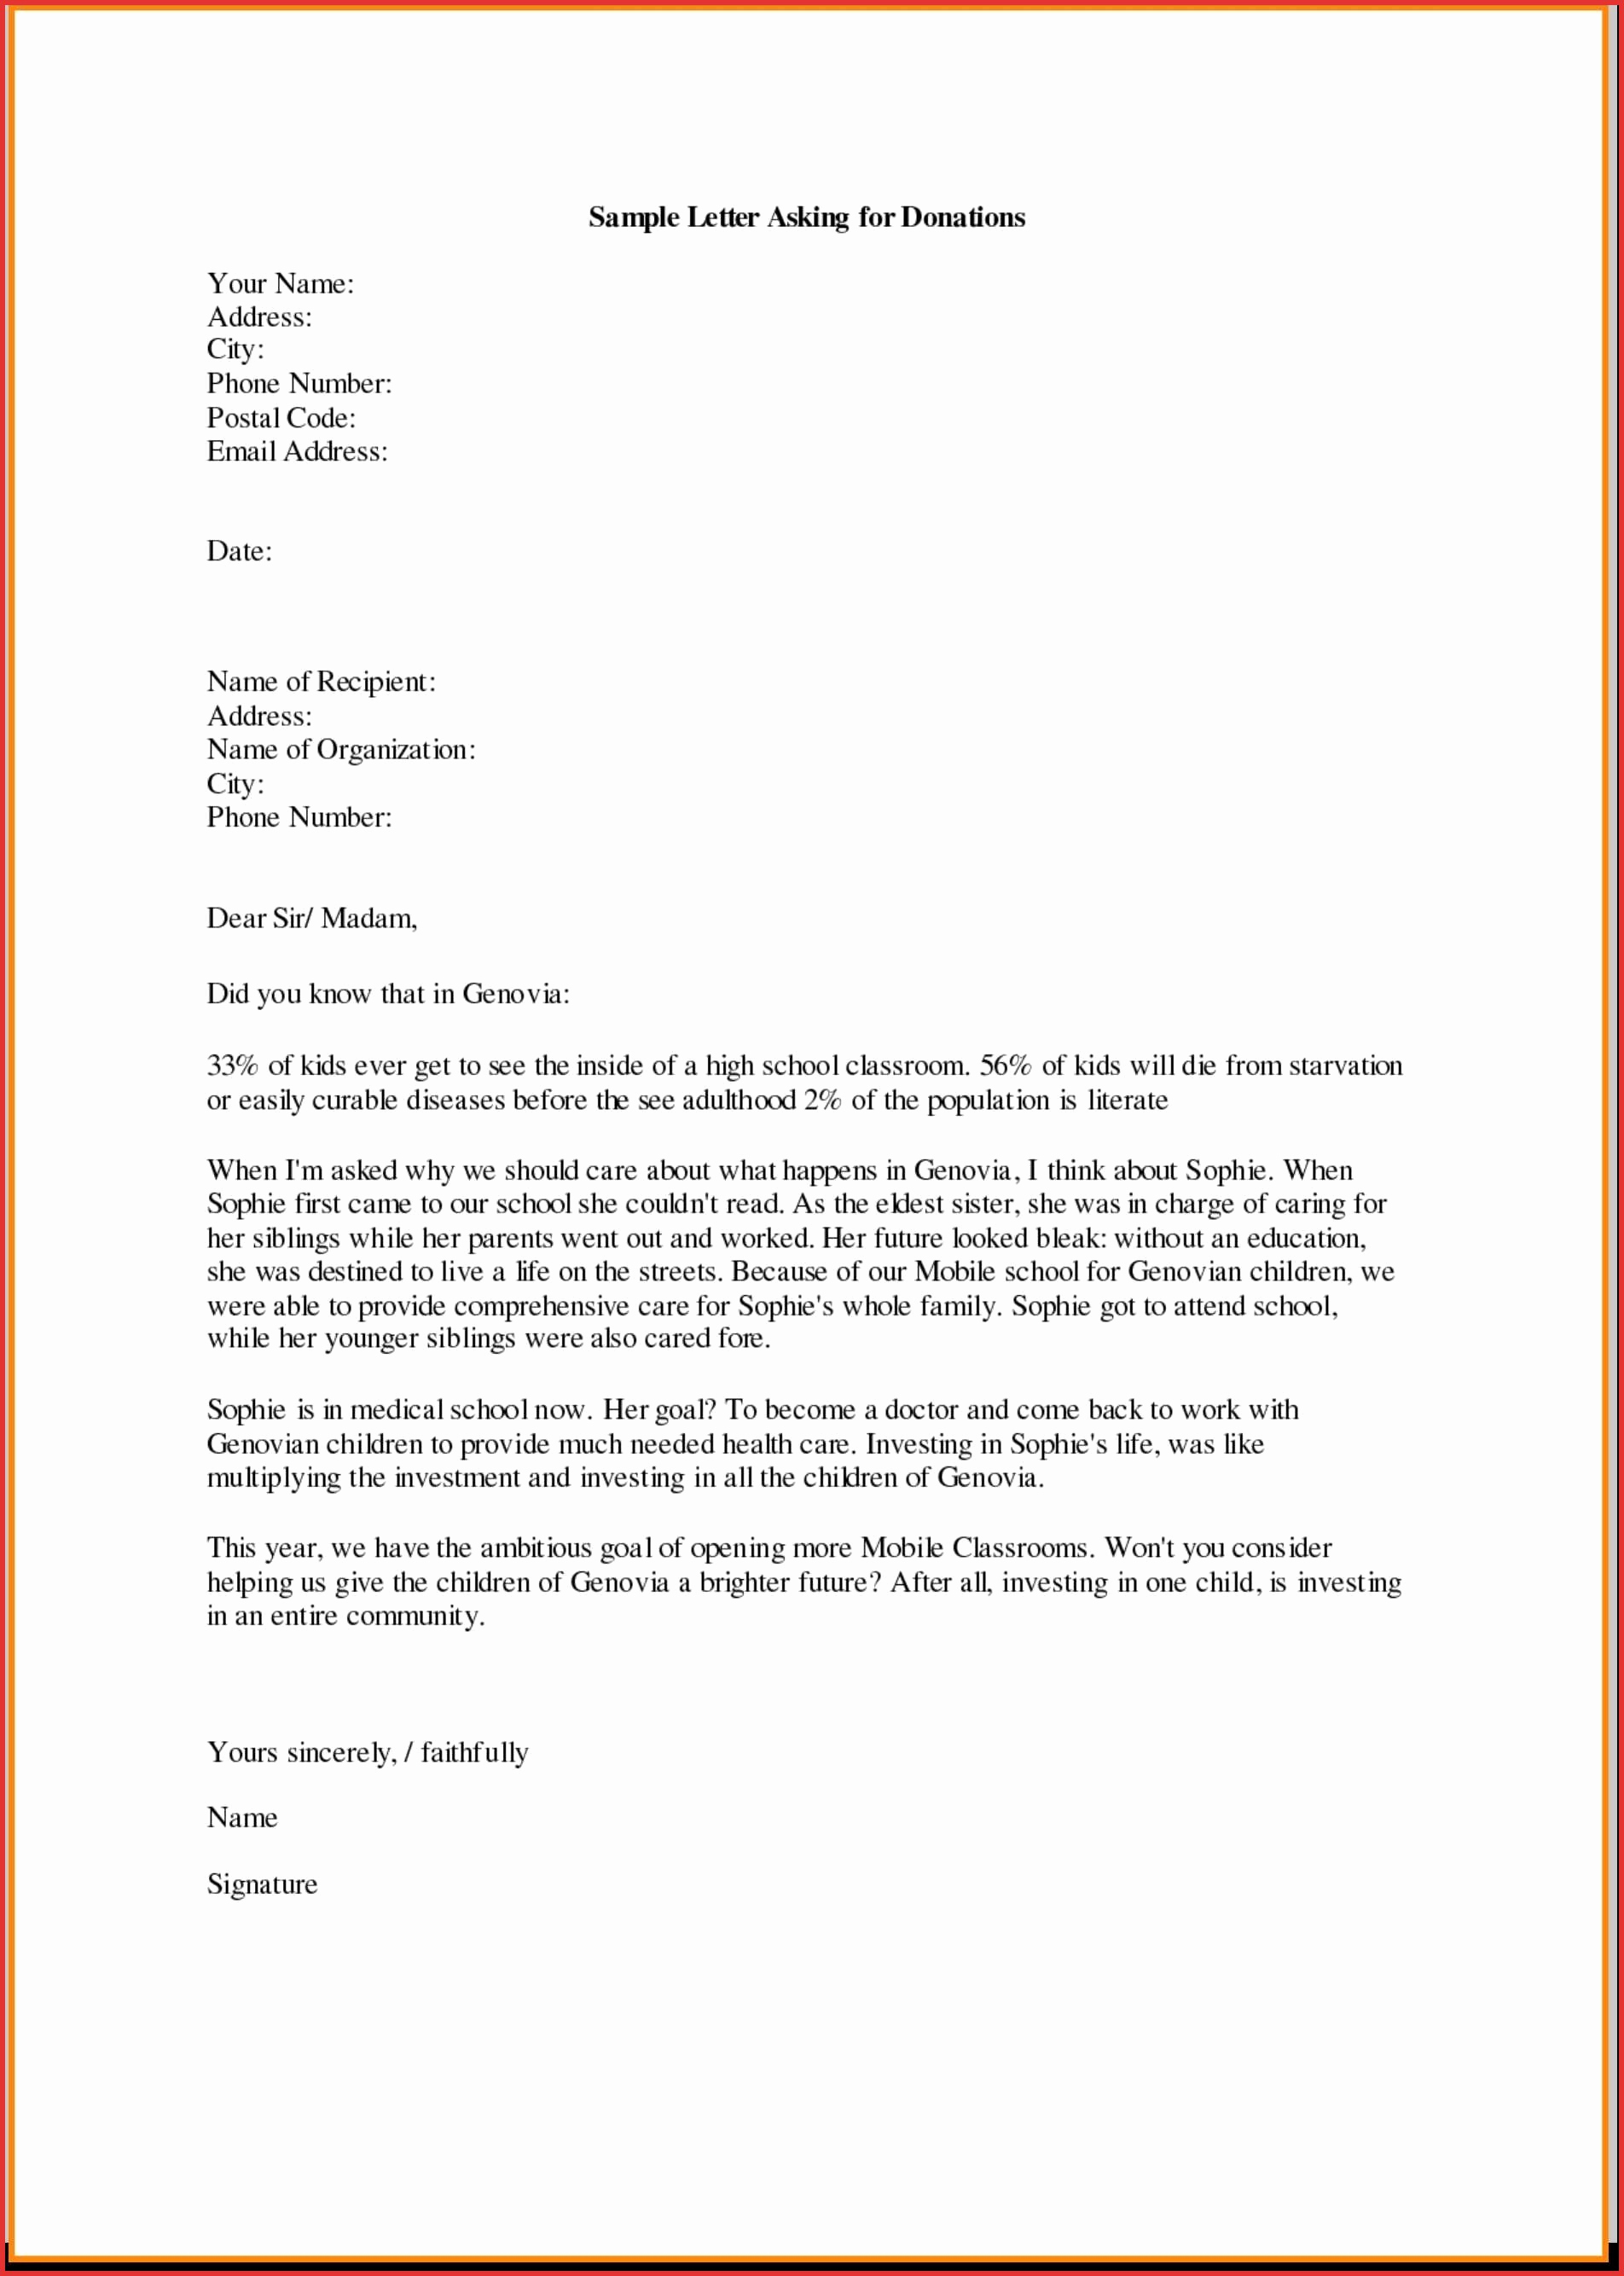 Donation Letter Template for Church - Sample Donation Request Letter for School Best Business Donation